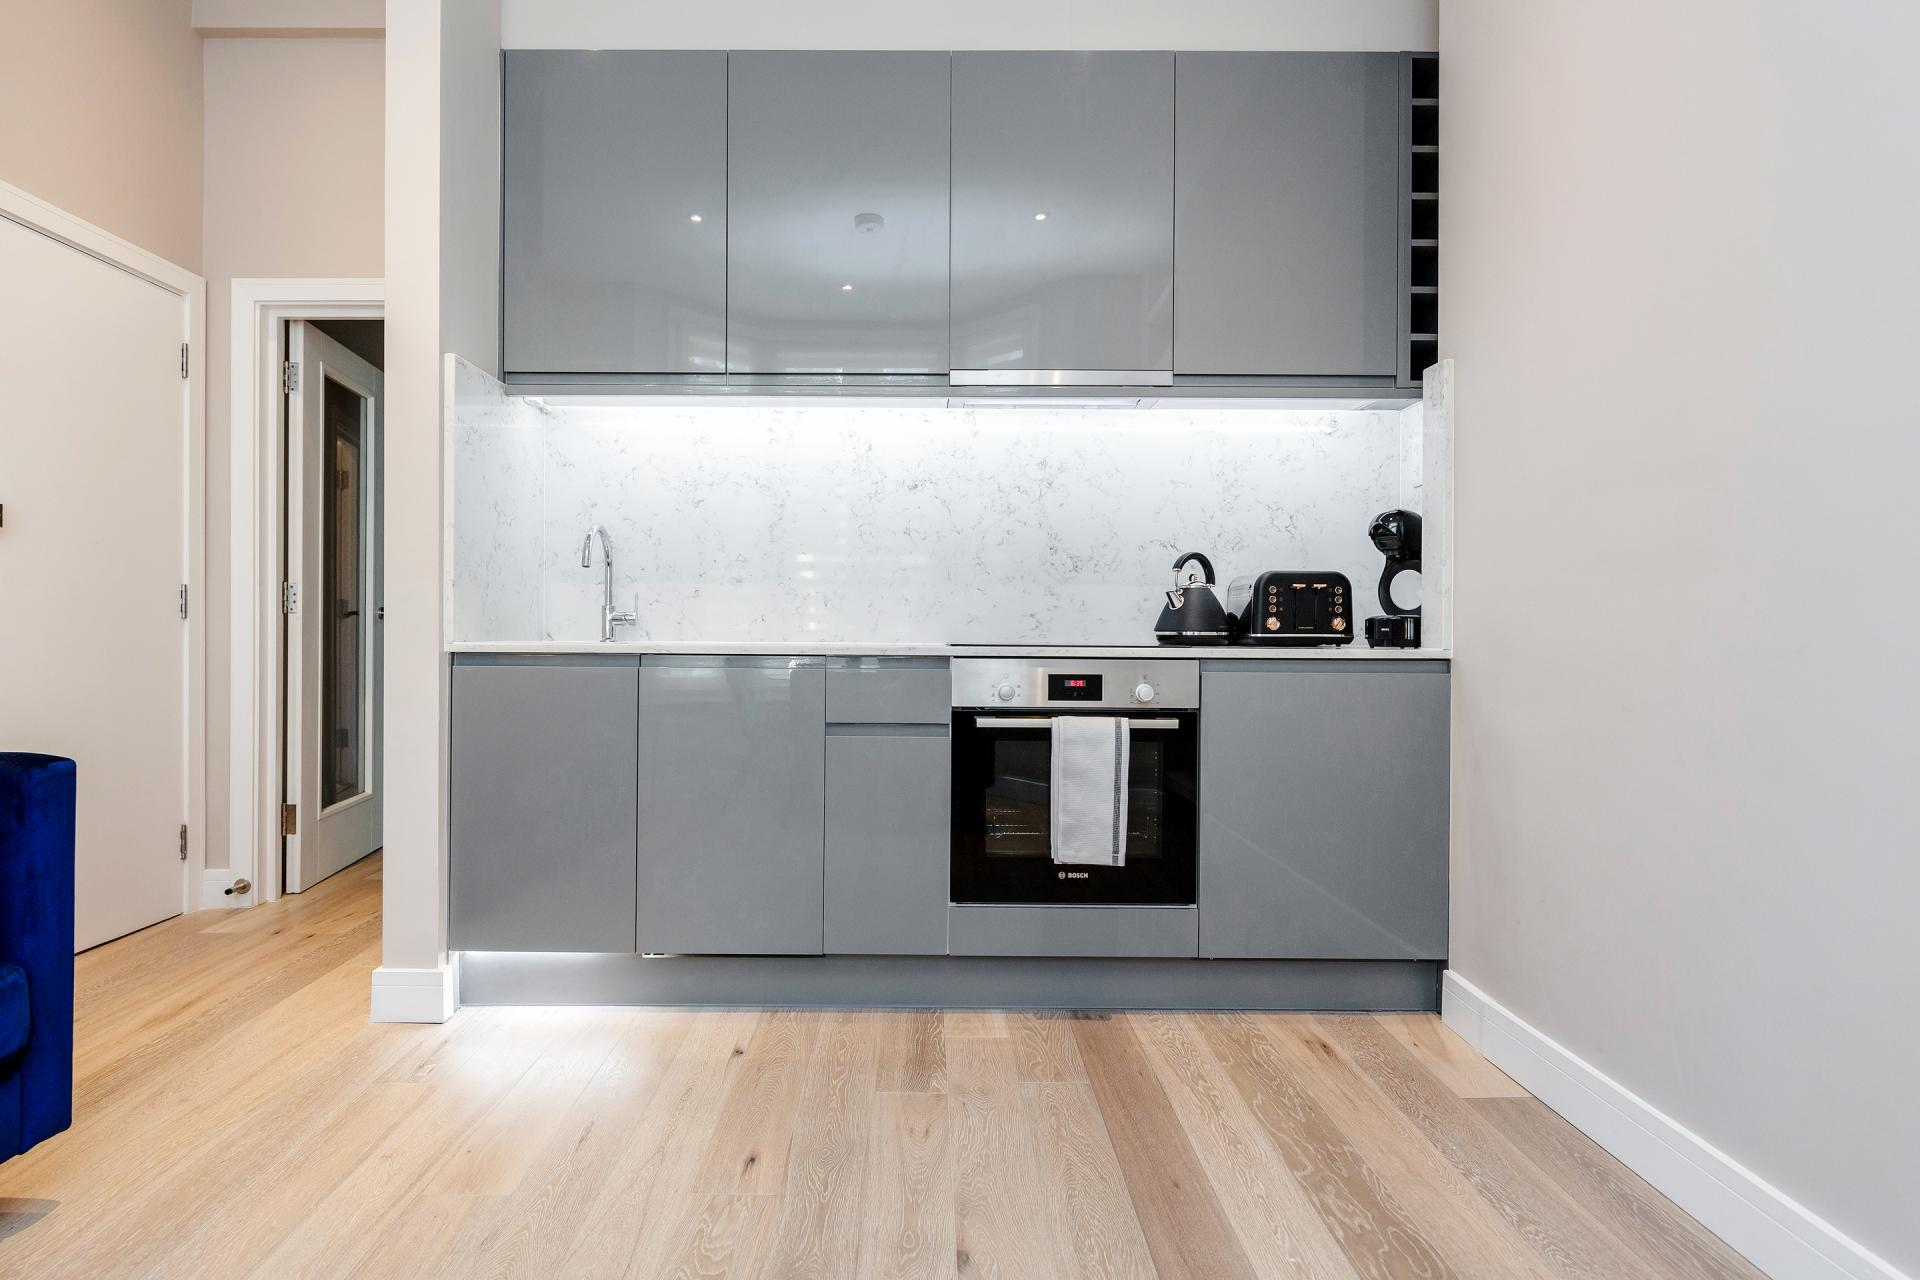 Kitchen at Notting Hill Style, Ladbroke Grove, London - Citybase Apartments